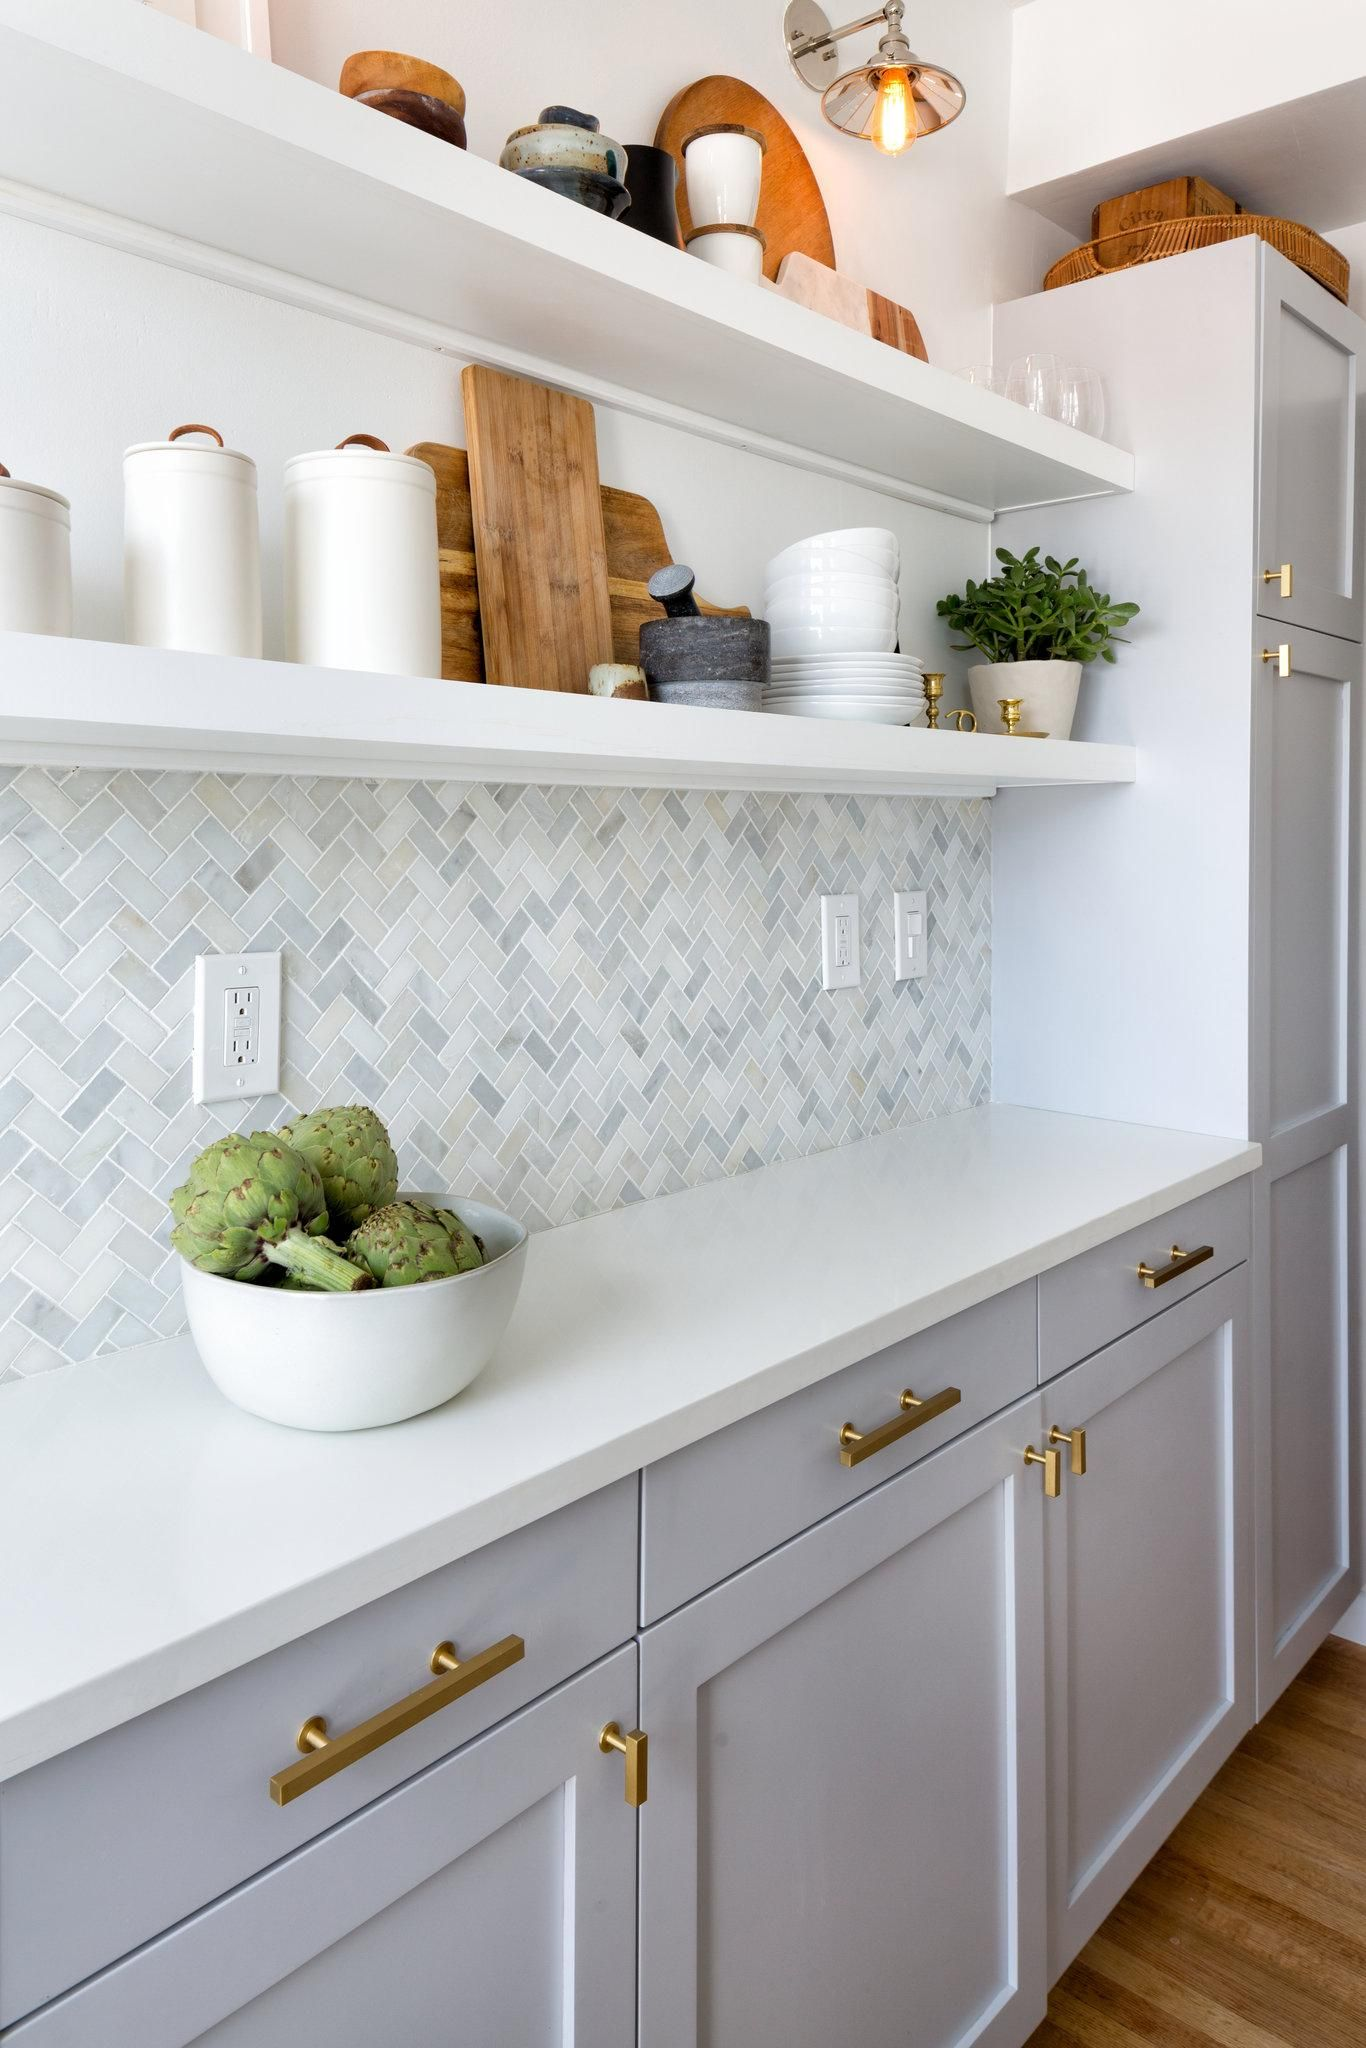 Making the Most of a Tiny Kitchen on a Tiny Budget - The New York Times #kitchenremodel